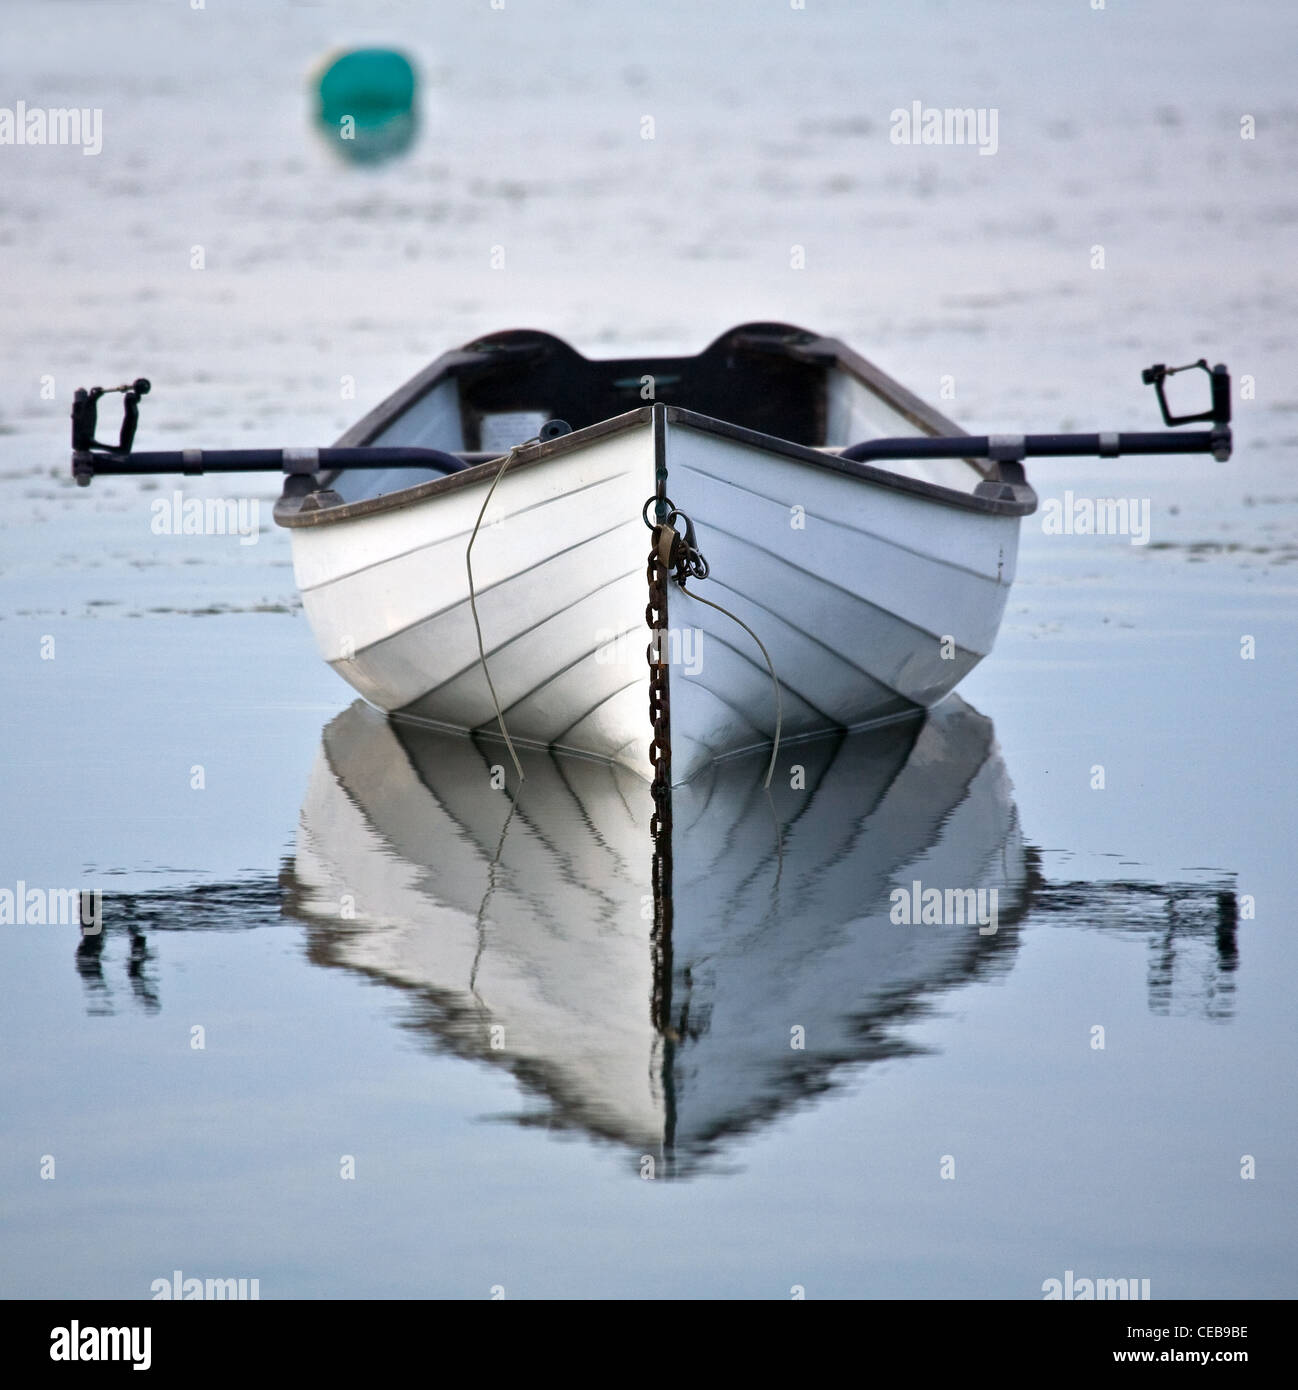 White wooden scull or row boat rests peacefully in water - Stock Image